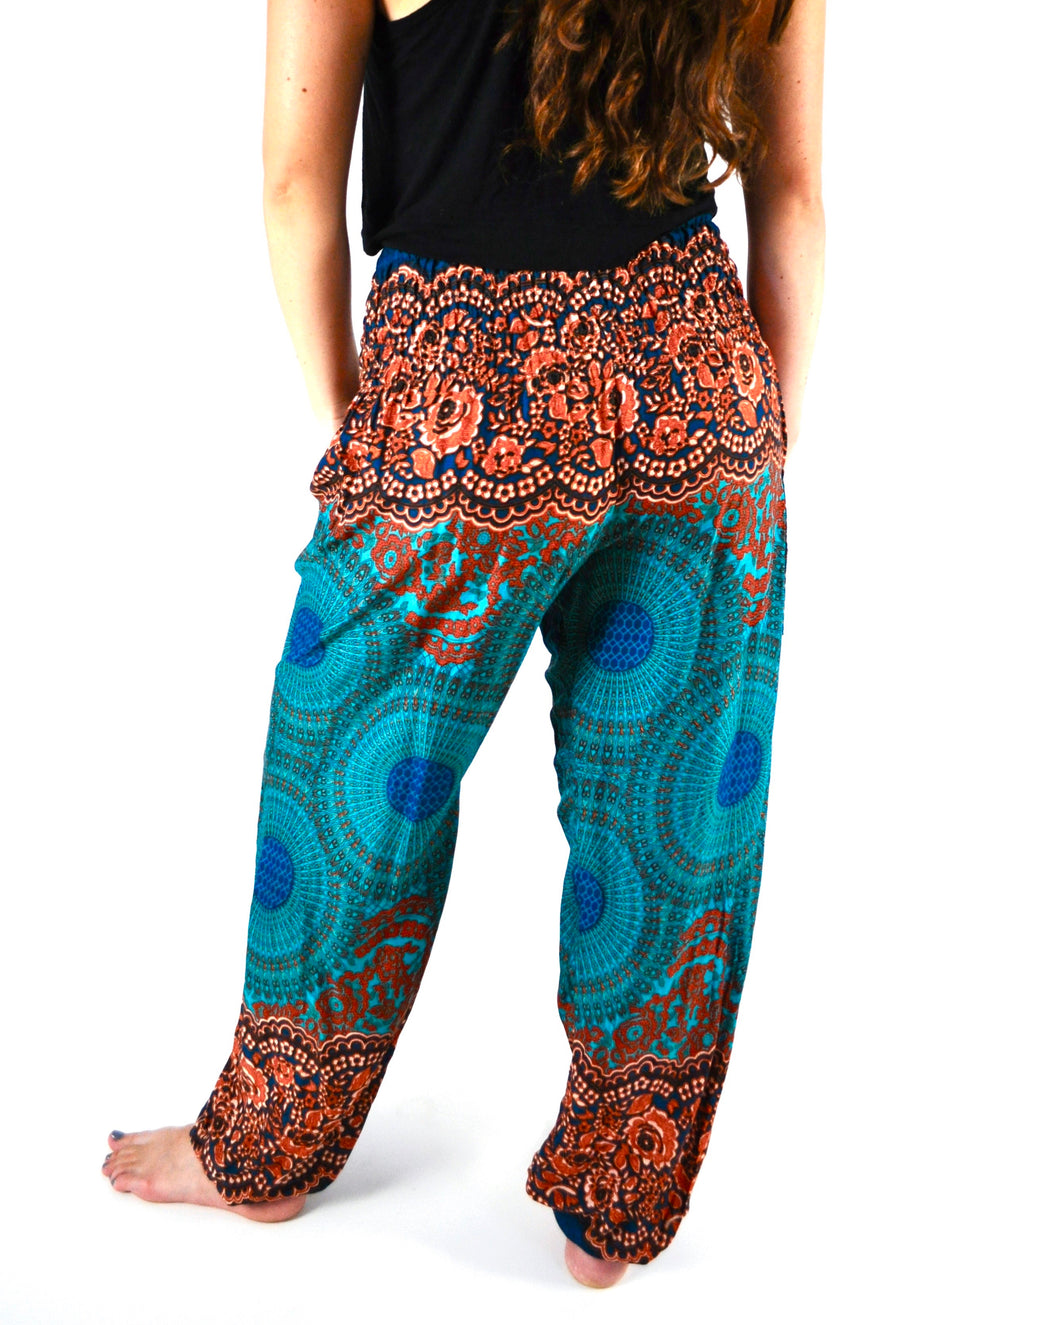 Rear-view mandala elephant pants in orange & teal with model and white background-fullsize image